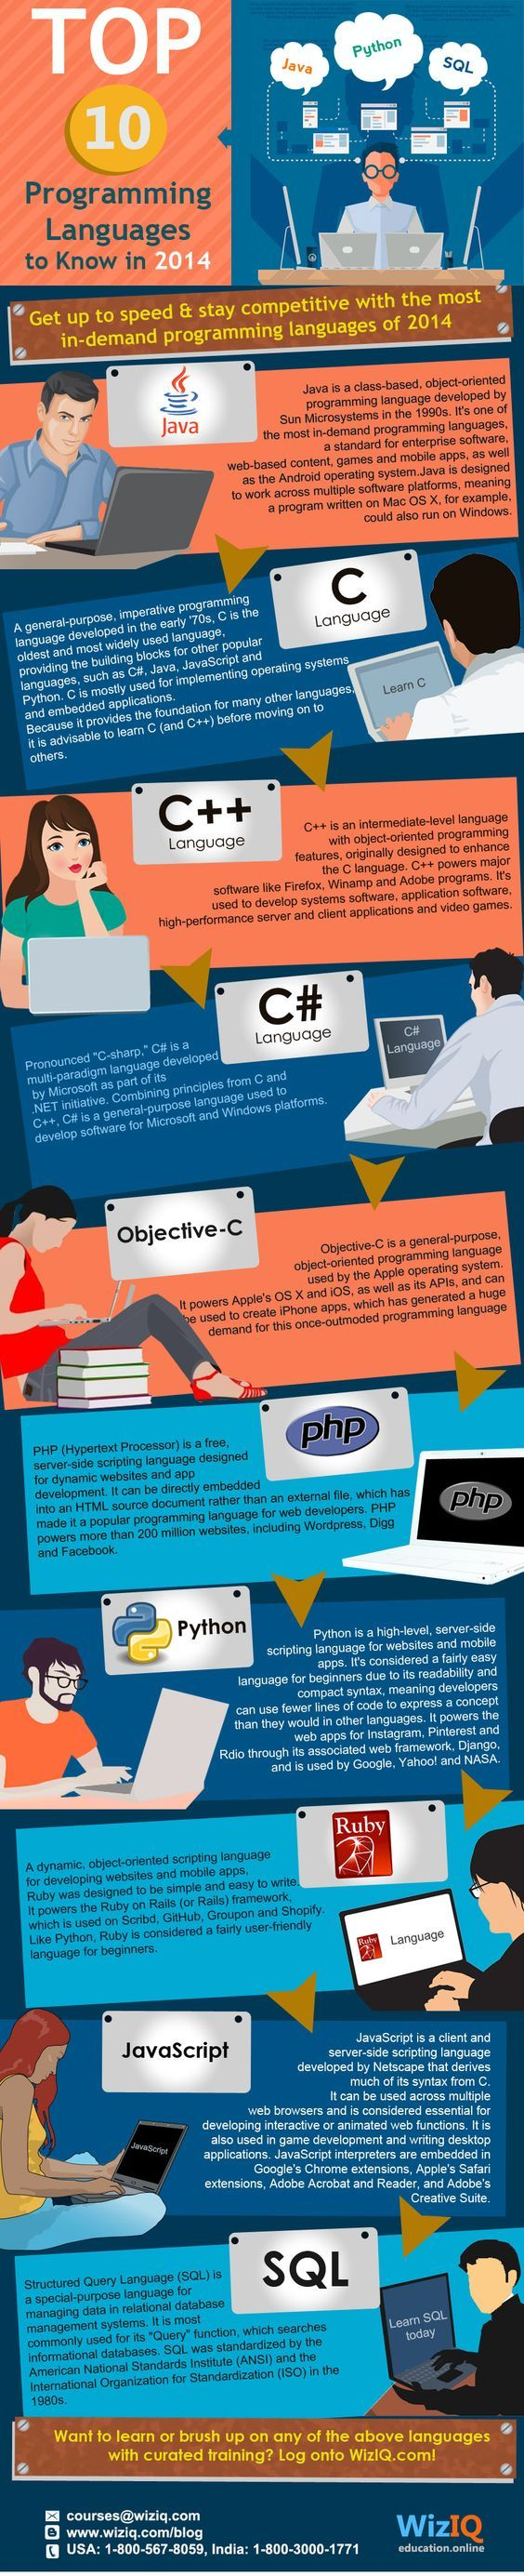 Top 10 Programming Languages to Know in 2014 #infographic #Programming #Education: